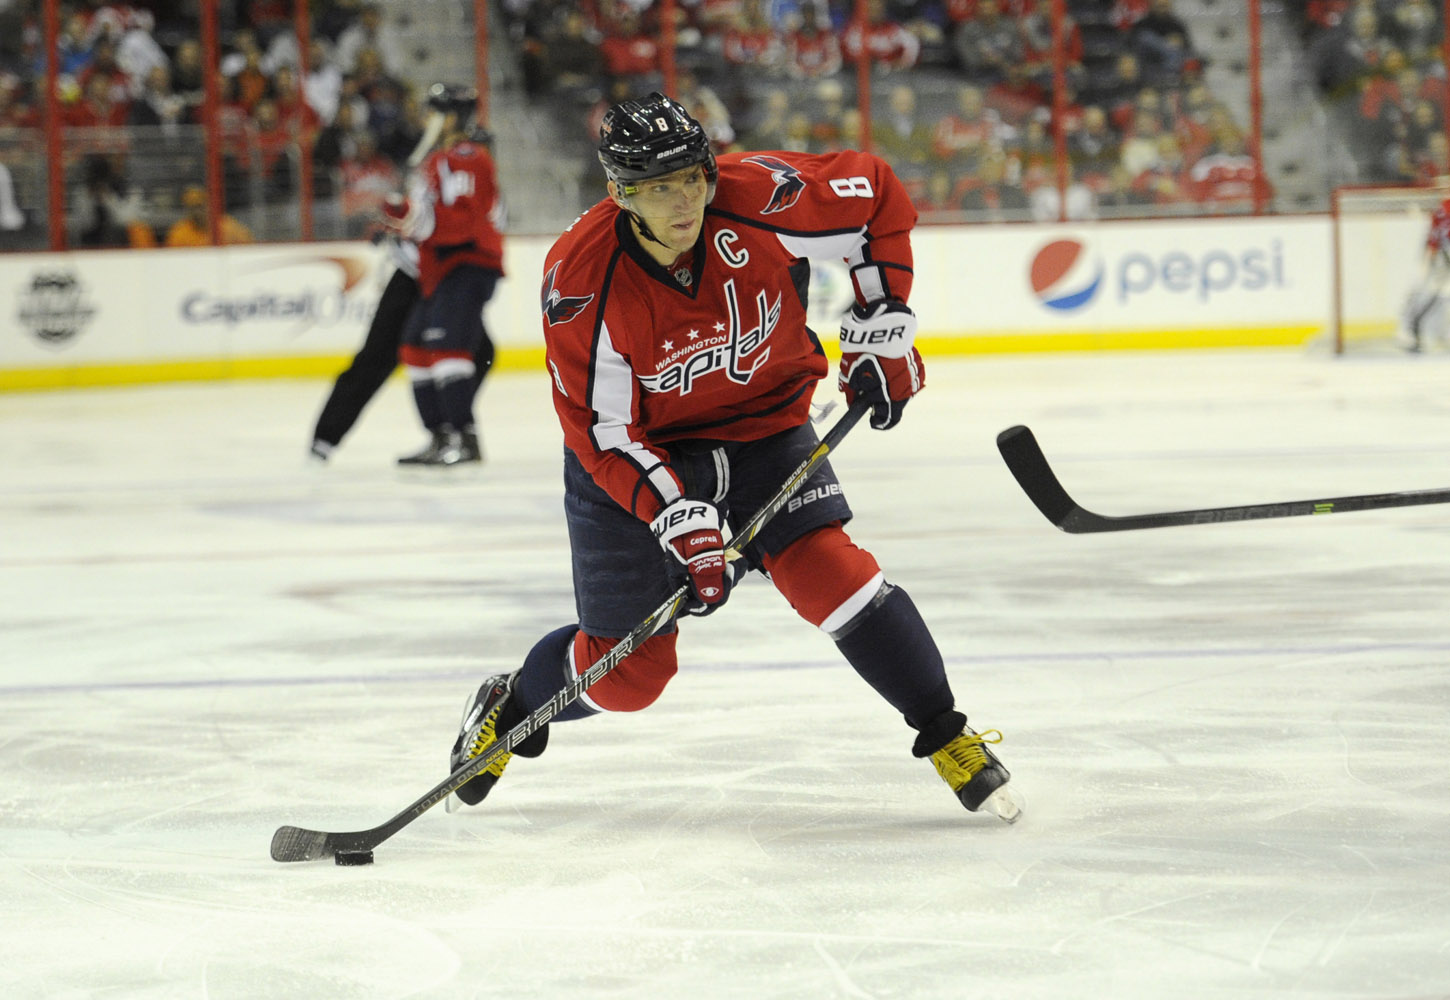 Position shift helps lift Ovechkin to banner year